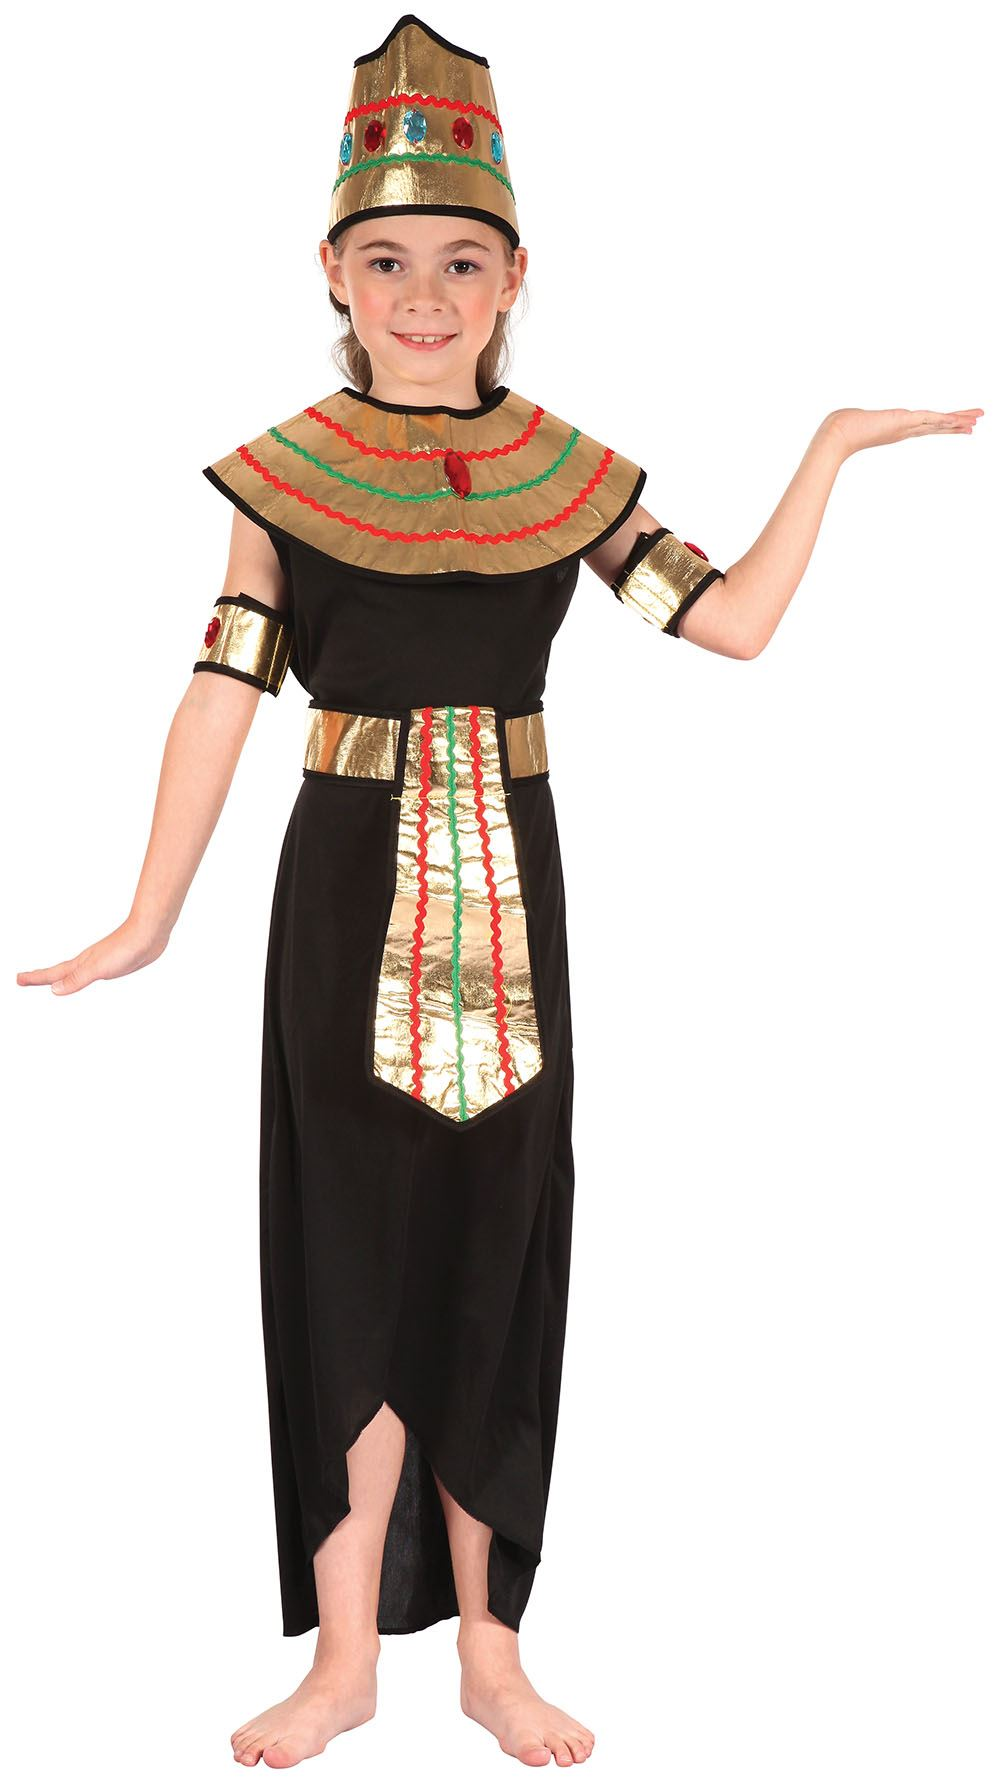 Queen-of-the-Nile-Cleopatra-Egyptian-Girls-Fancy-  sc 1 st  eBay & Queen of the Nile Cleopatra Egyptian Girls Fancy Dress Costume ...